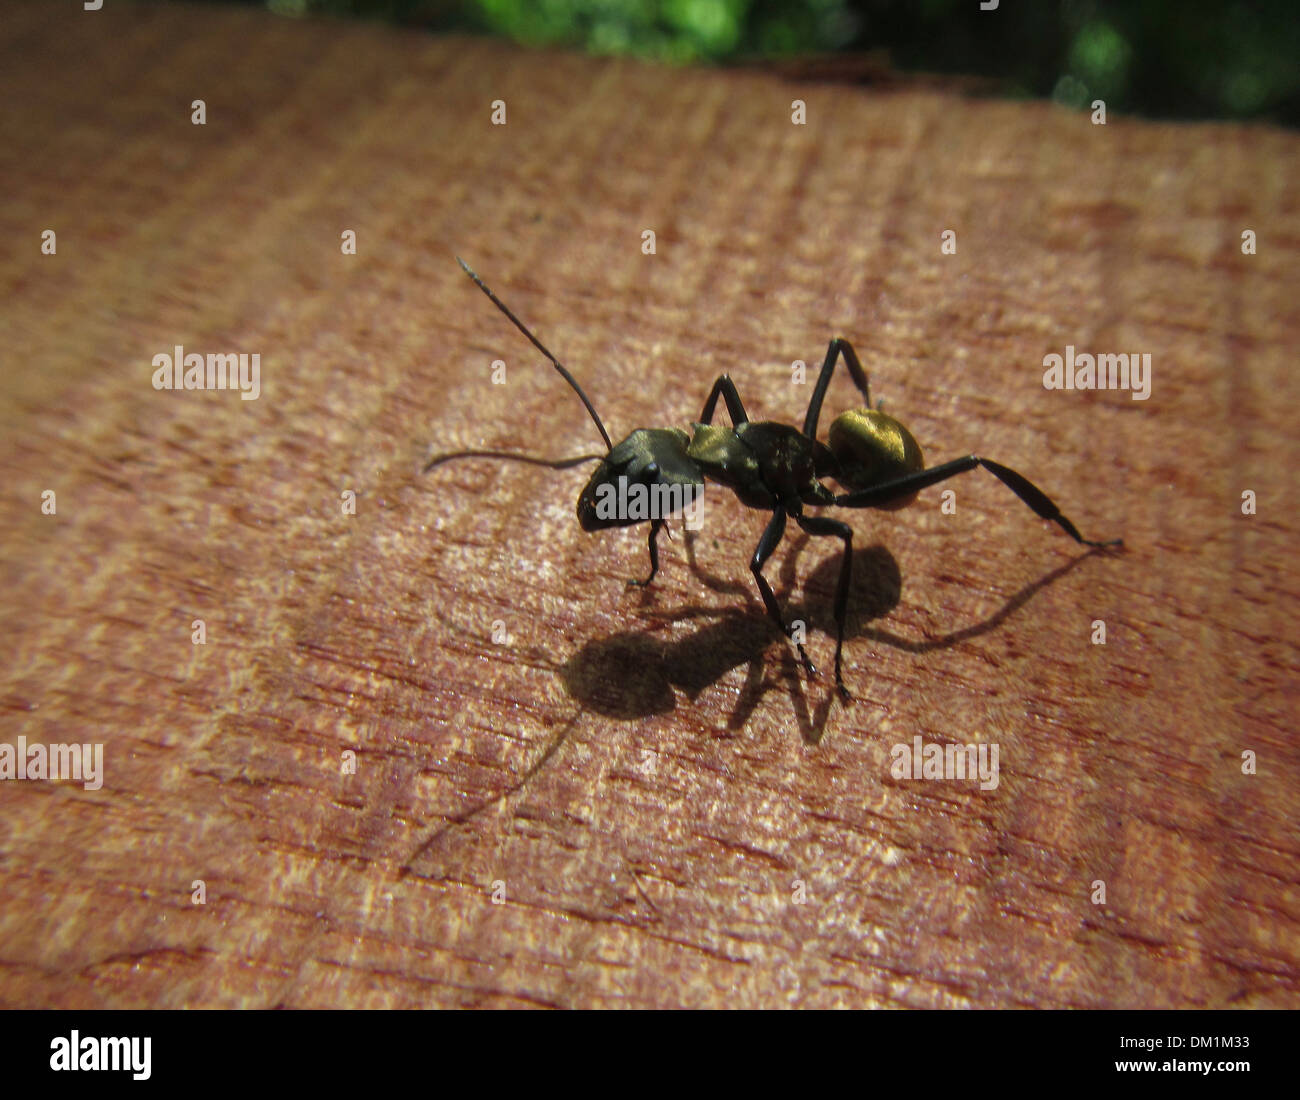 Golden Ant in Costa Rica Camponotus sericeiventris. Golden Carpenter ants, one of the most recognizable ants in Central America - Stock Image